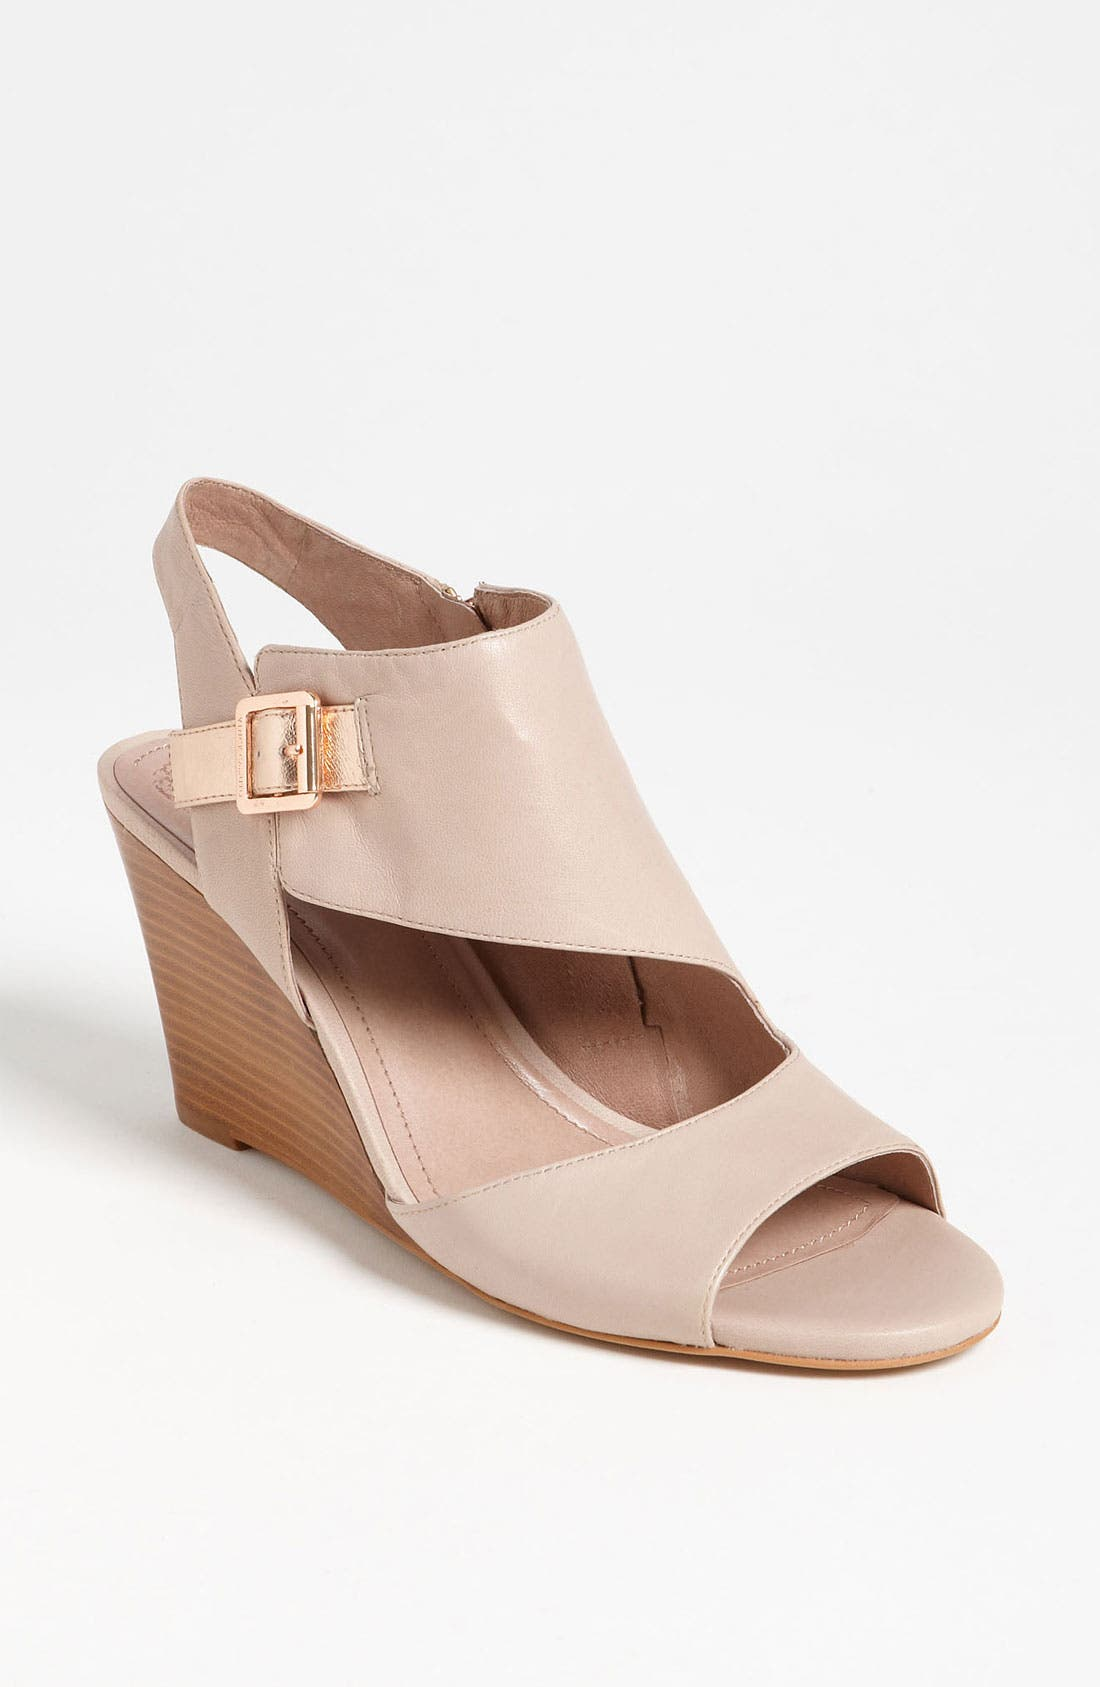 Main Image - Vince Camuto 'Hannah' Sandal (Exclusive)